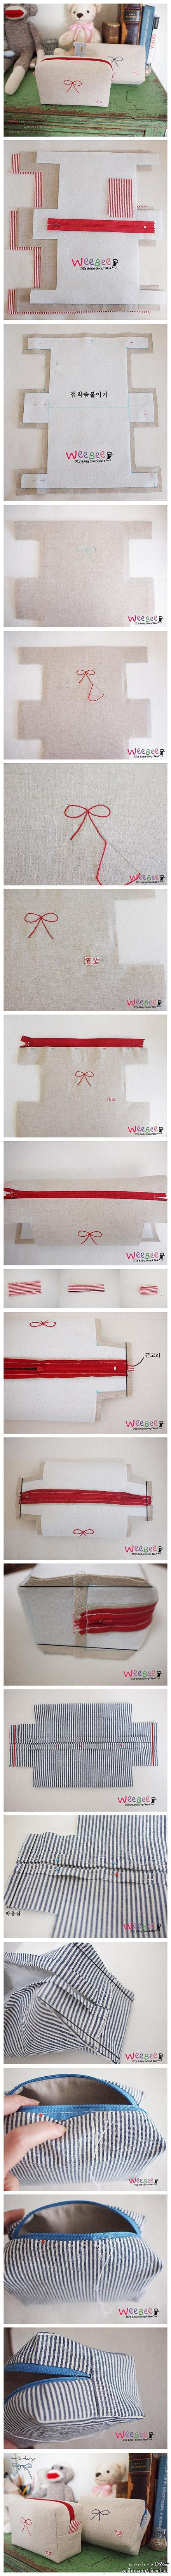 DIY cosmetic bag - Japanese